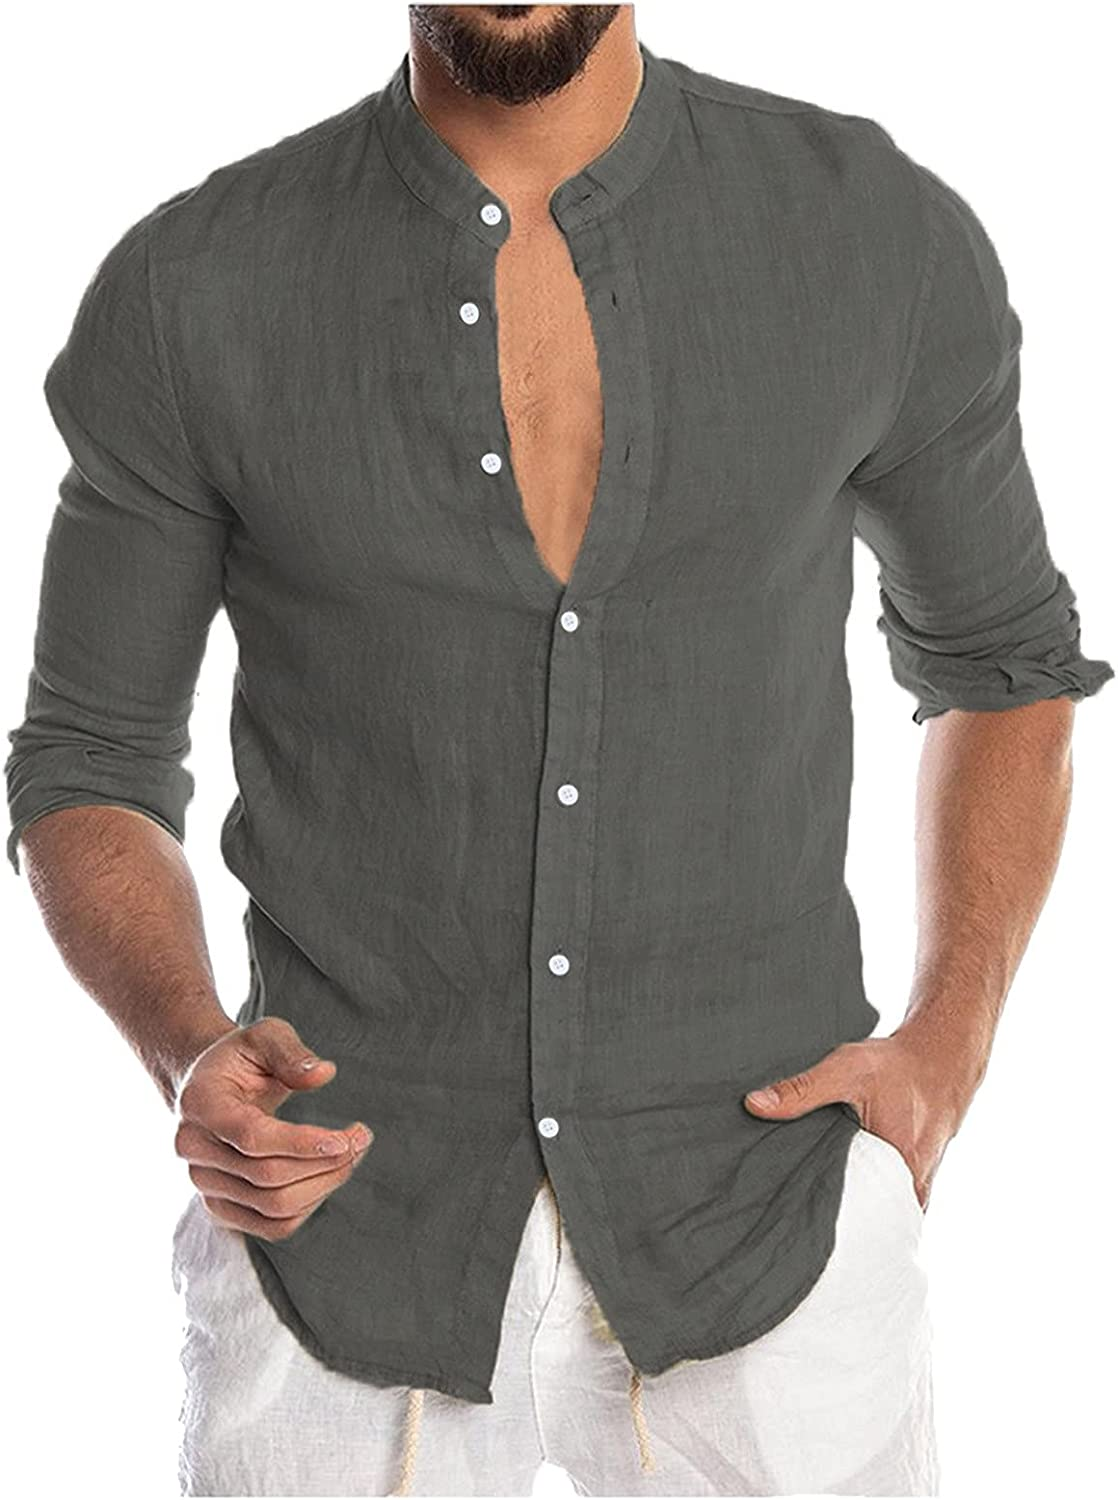 WOCACHI Long Sleeve Shirts for Mens, Button-down Fall Roll-Up Casual Slim Fit Solid Tops Shirts with Front Pockets